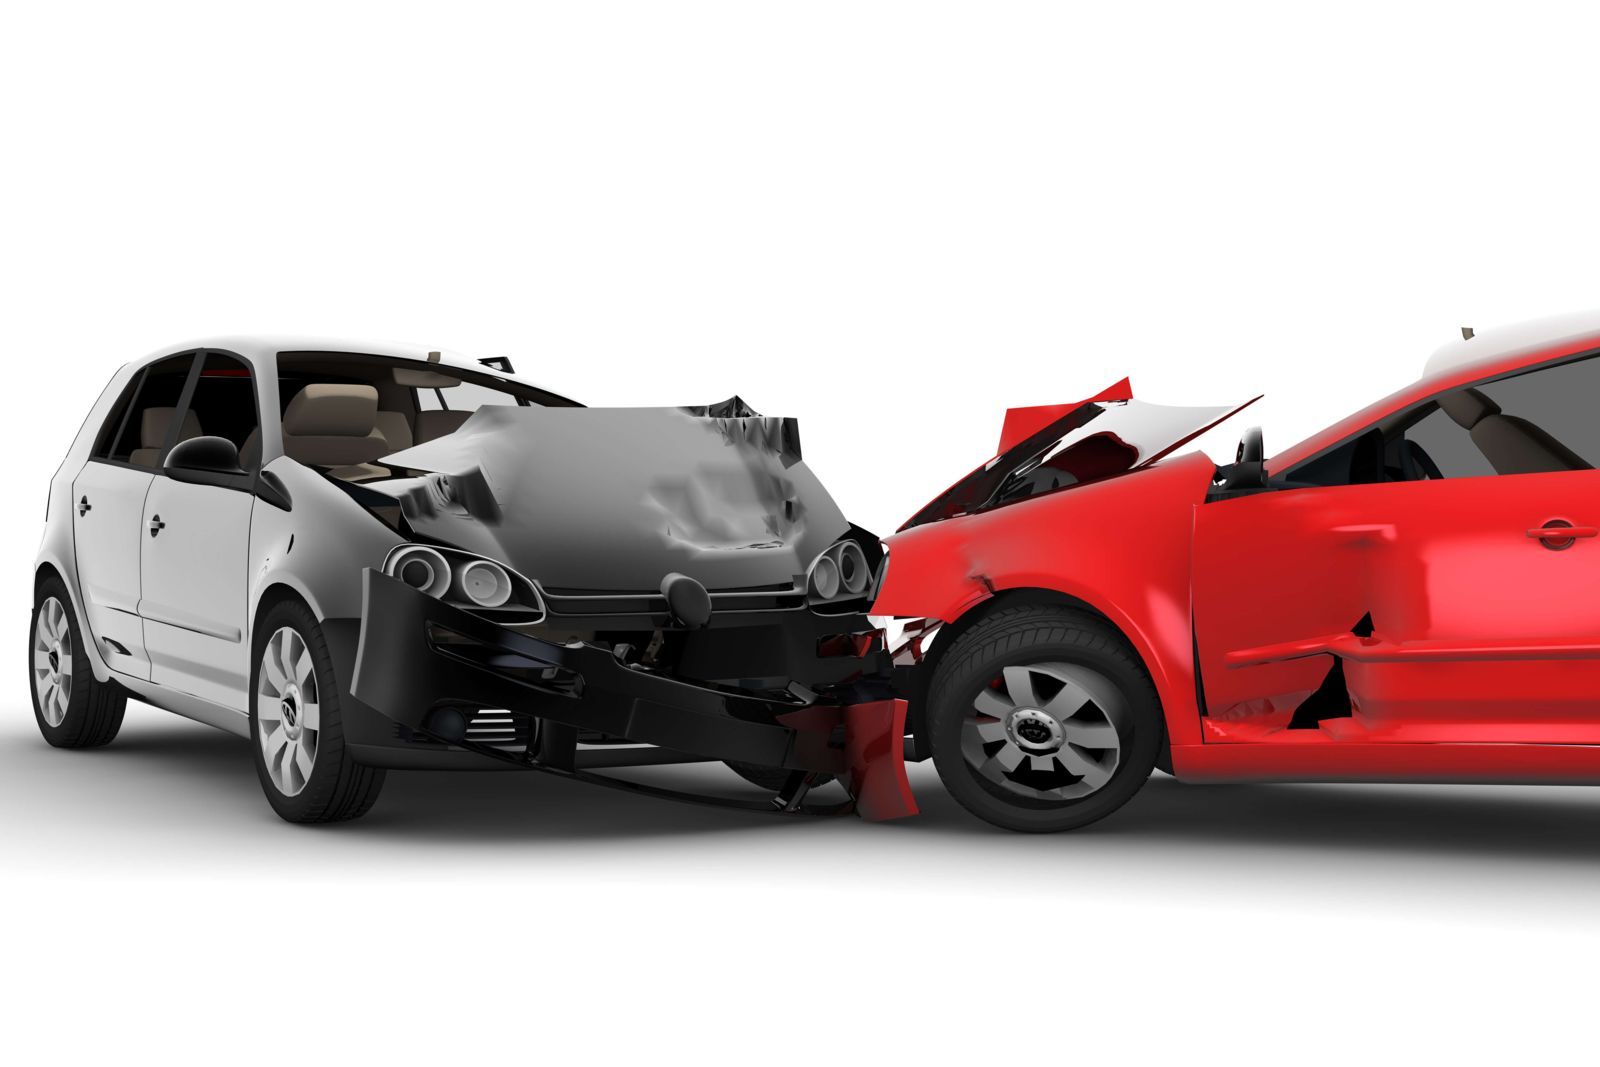 Chris Hudson & Associate Black Box Car Accident Information